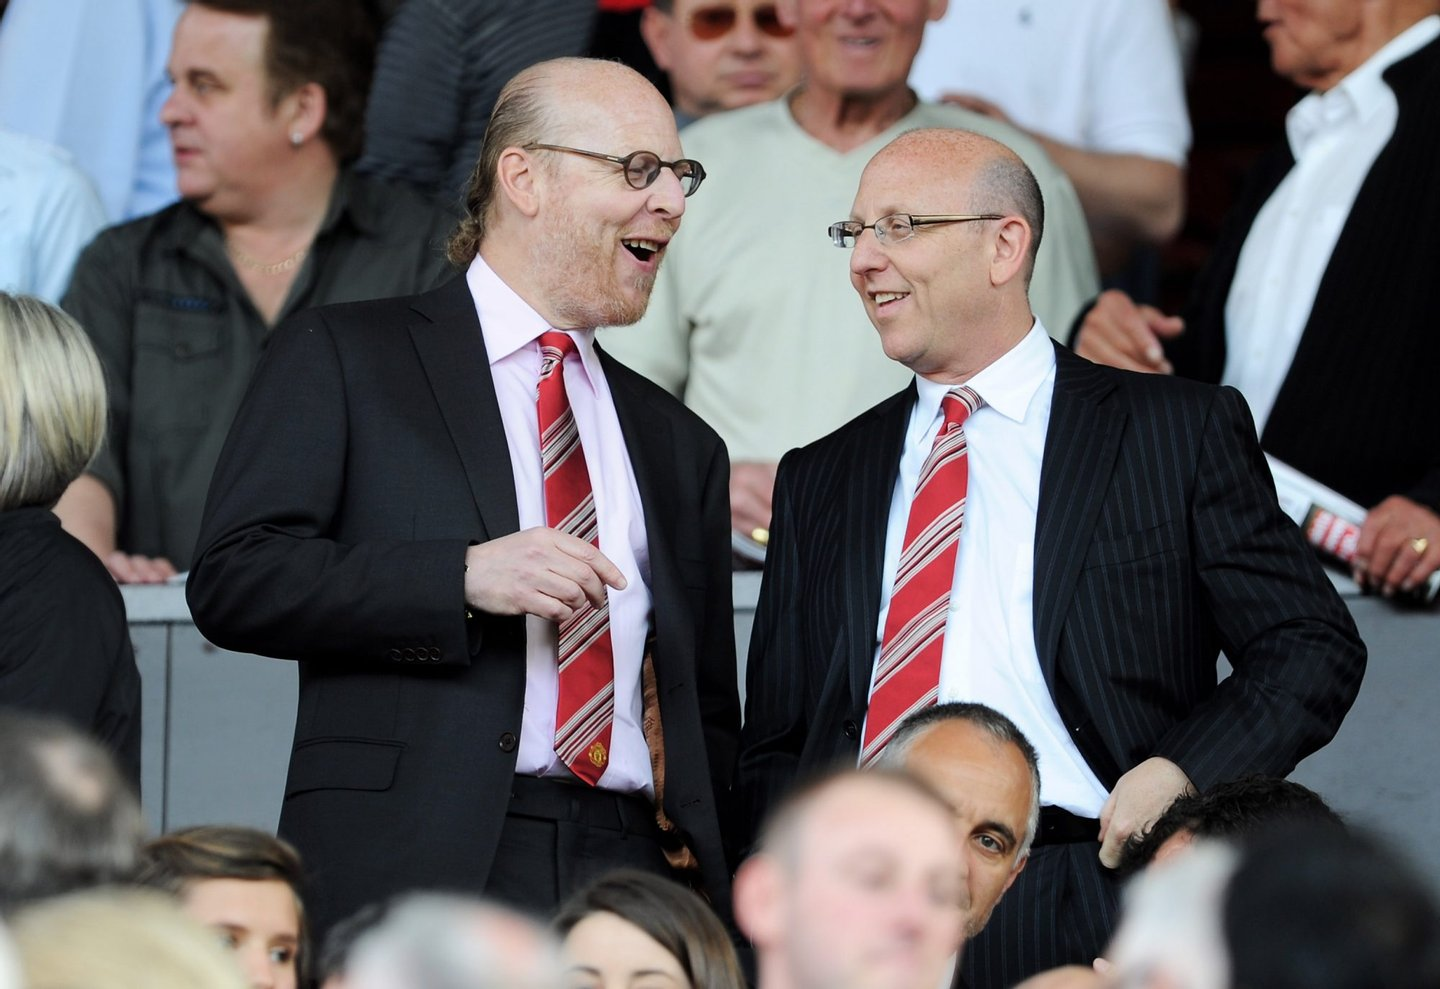 MANCHESTER, ENGLAND - APRIL 09: Manchester United Co-Chairmen Joel Glazer (R) and Avram Glazer talk during the Barclays Premier League match between Manchester United and Fulham at Old Trafford on April 9, 2011 in Manchester, England. (Photo by Michael Regan/Getty Images)